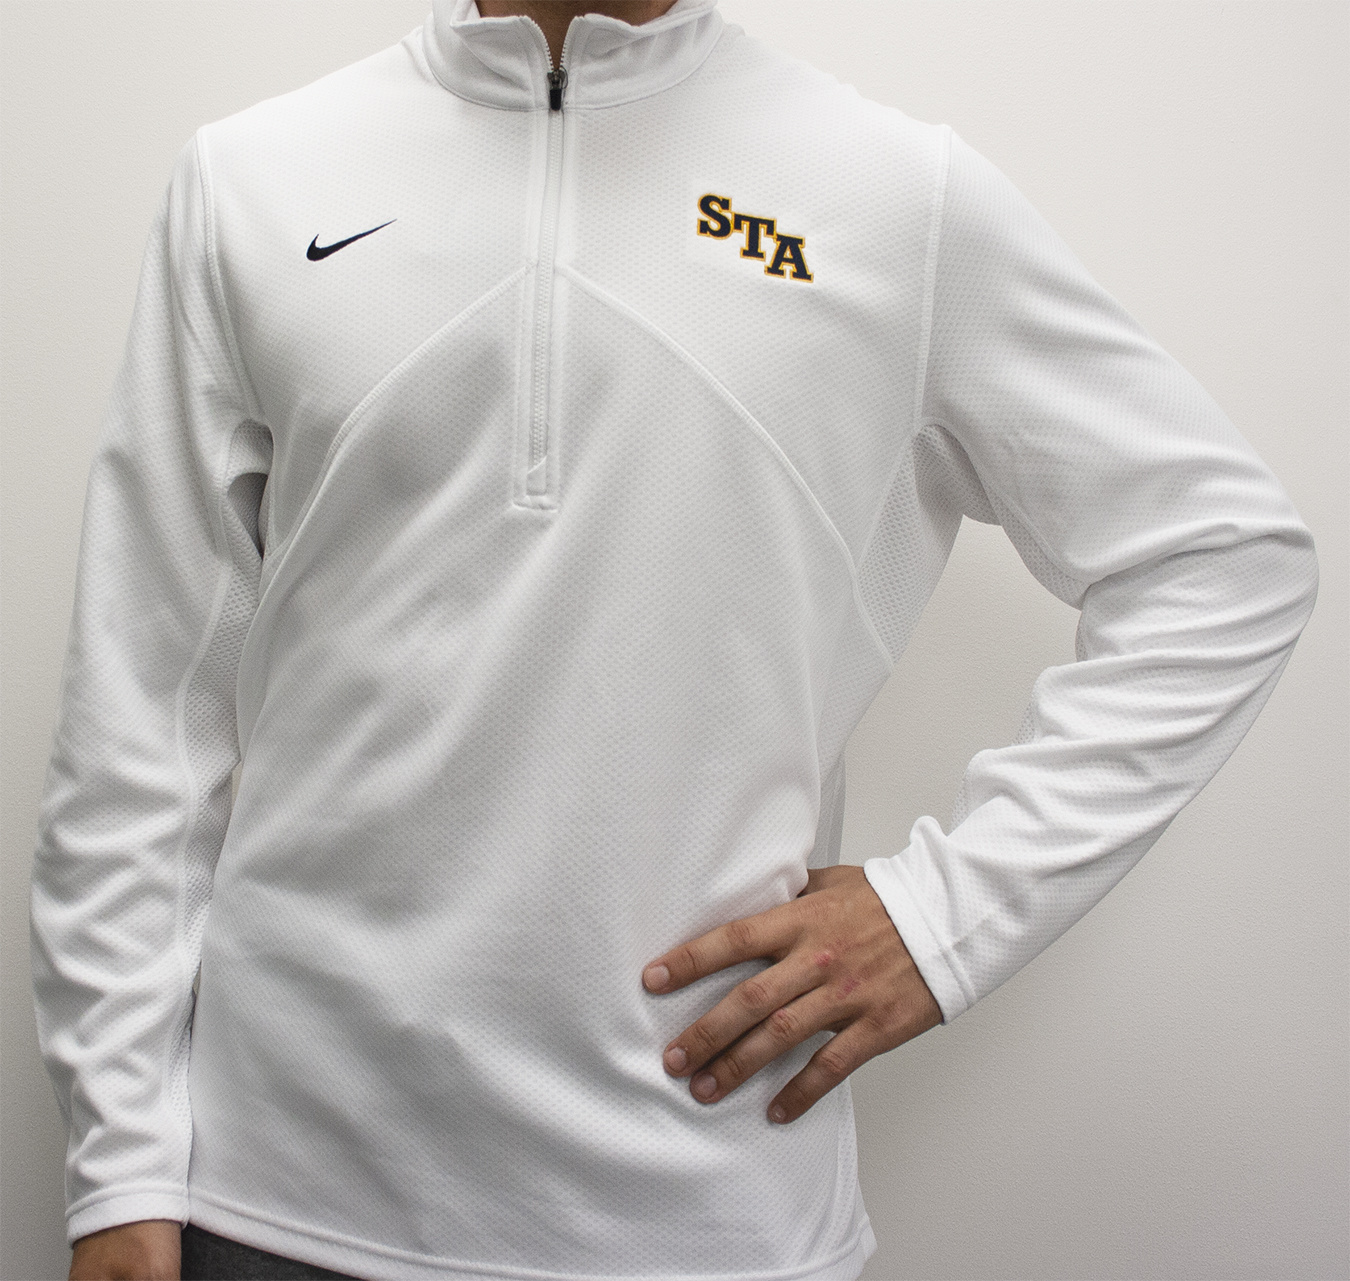 Nike Men's White Nike 1/4 Zip Jacket